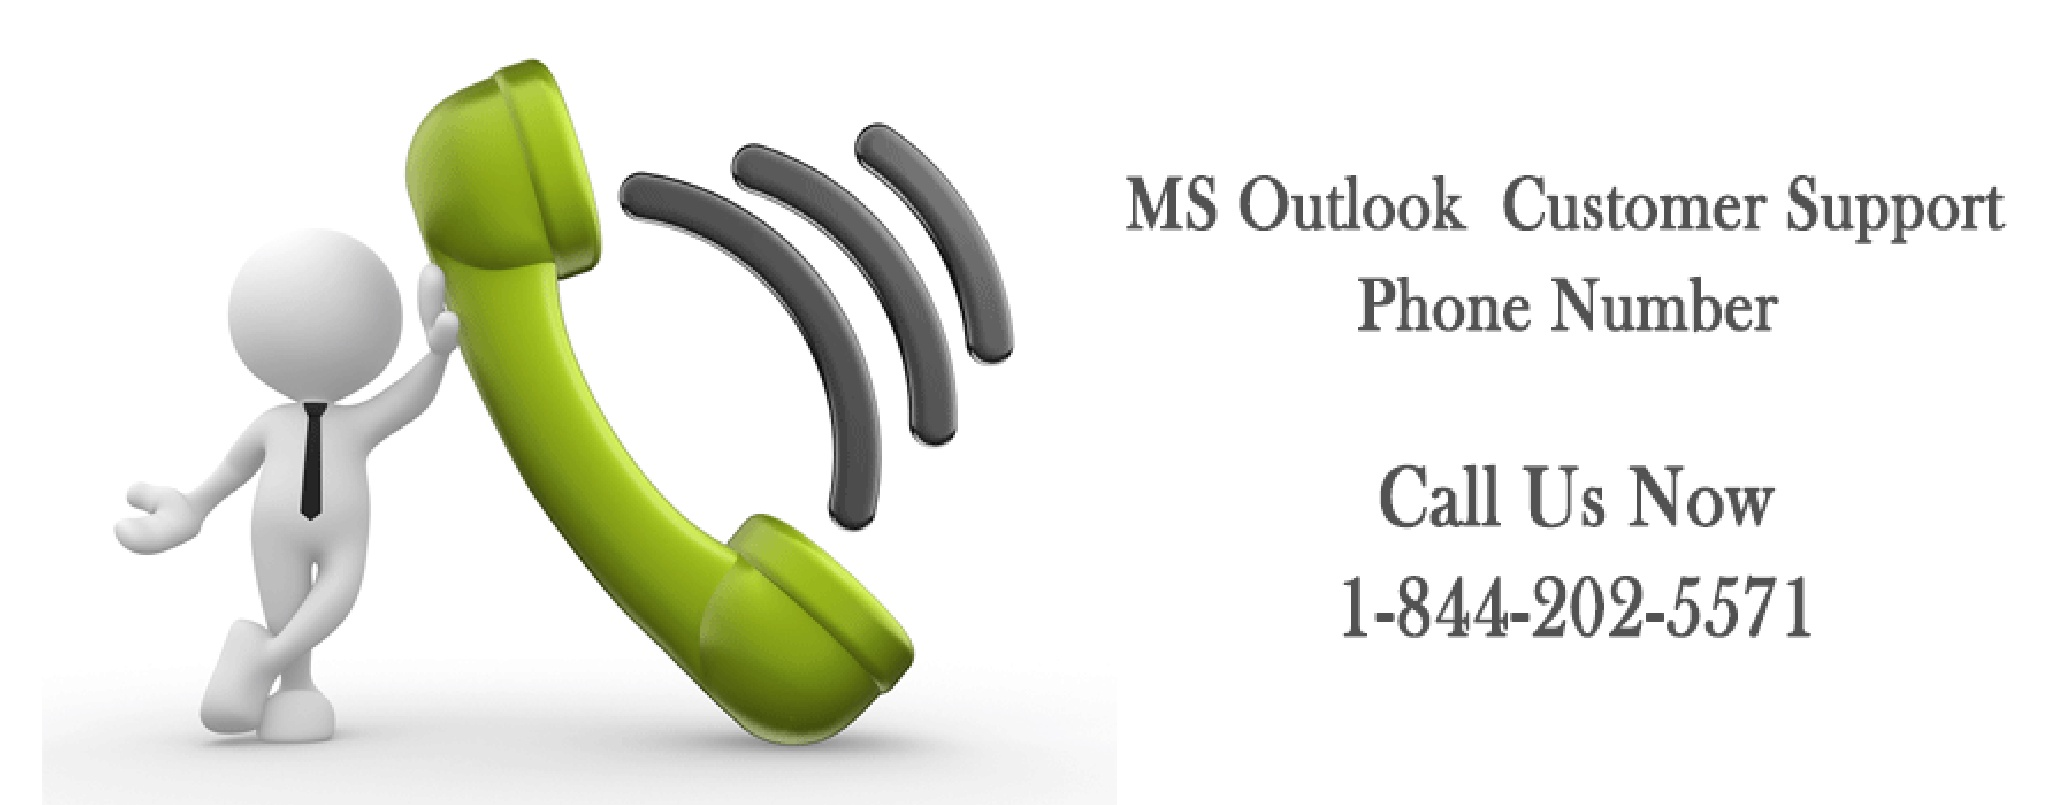 Fix Outlook mail issues through 18442025571 Outlook mail tech support phone number by victoriamartin